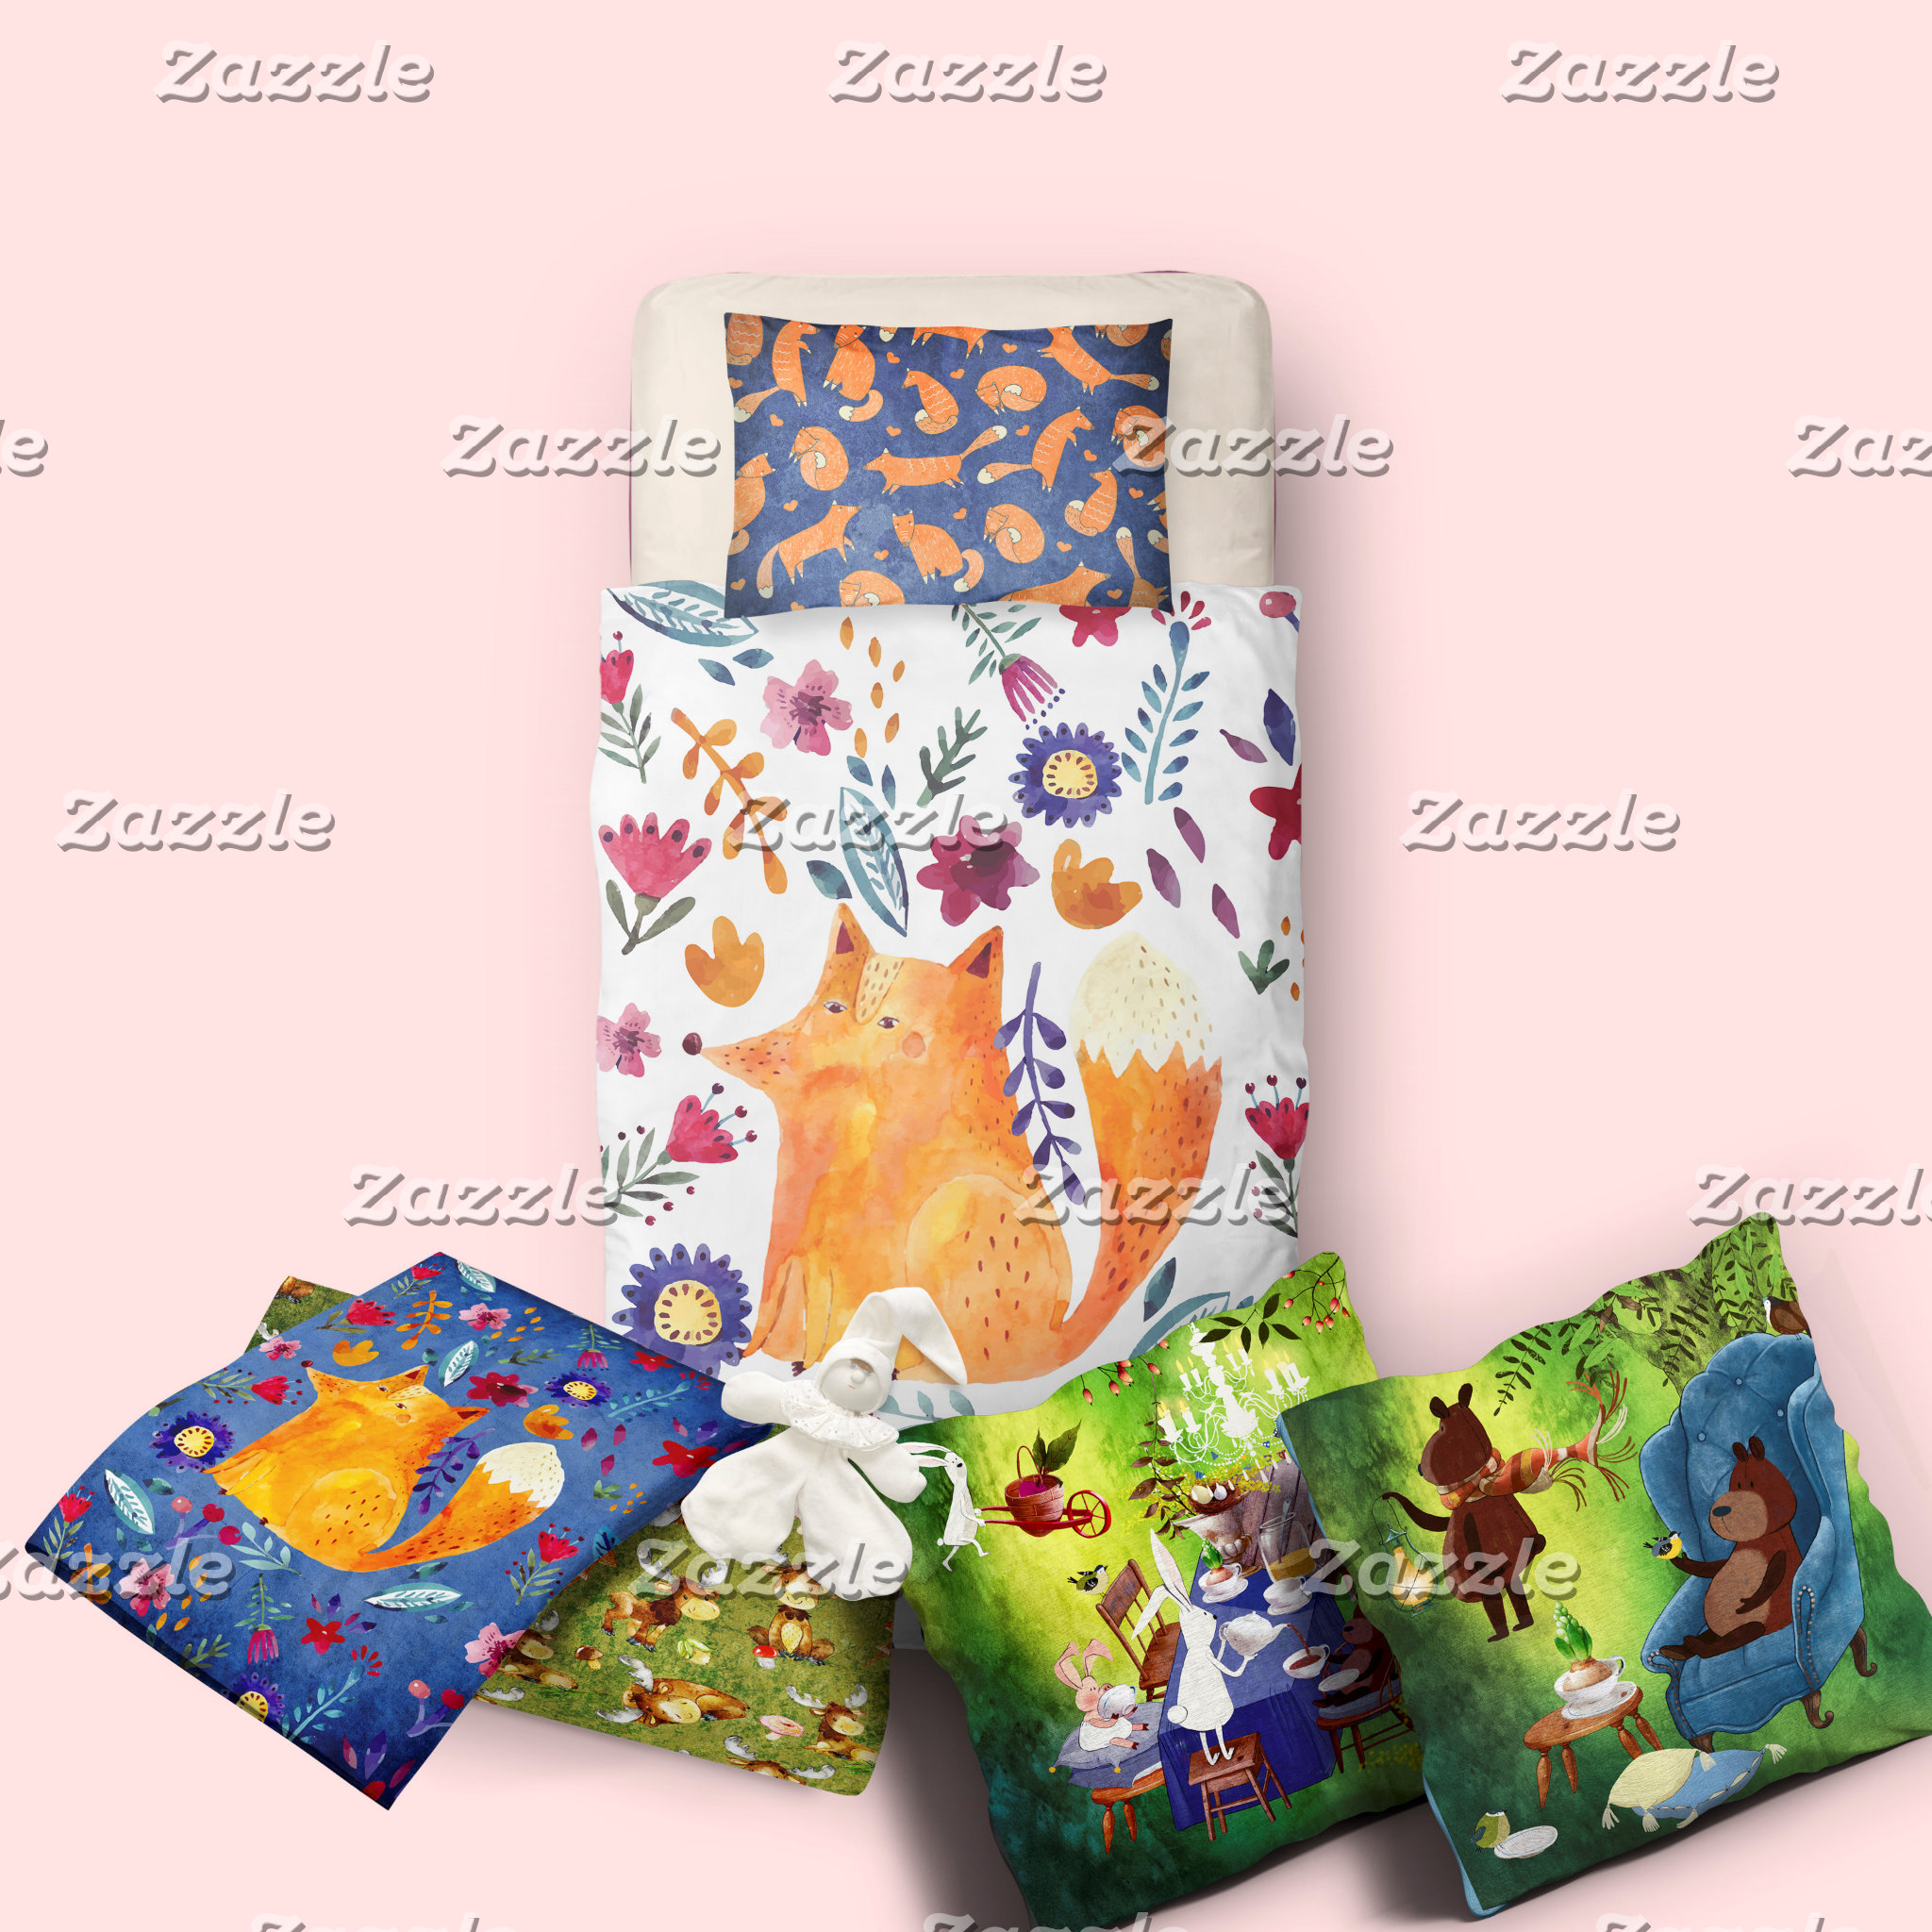 CUTE STUFF FOR KIDS AND ADULTS